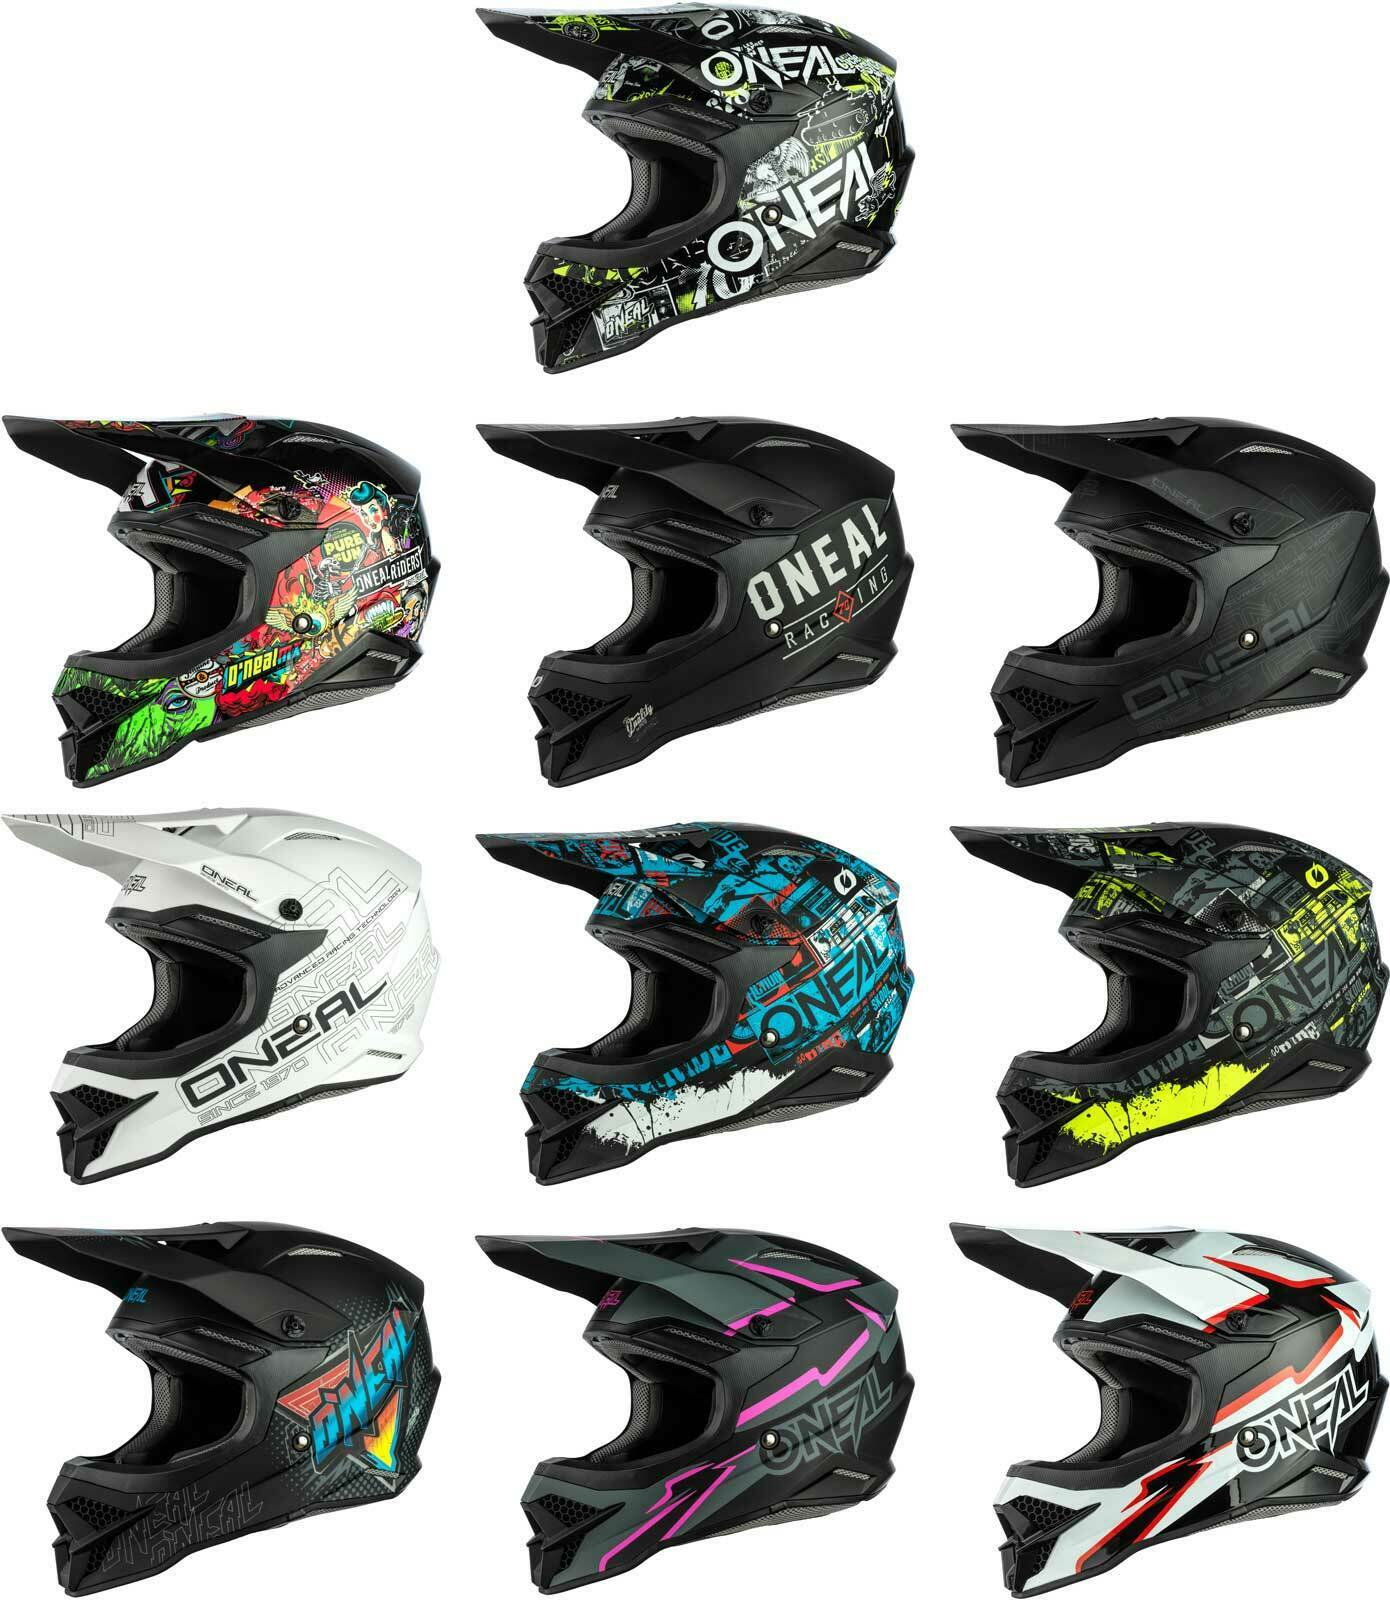 ONeal 2 Series Unisex-Adult Off-Road Helmet White//Blue//Red, XS